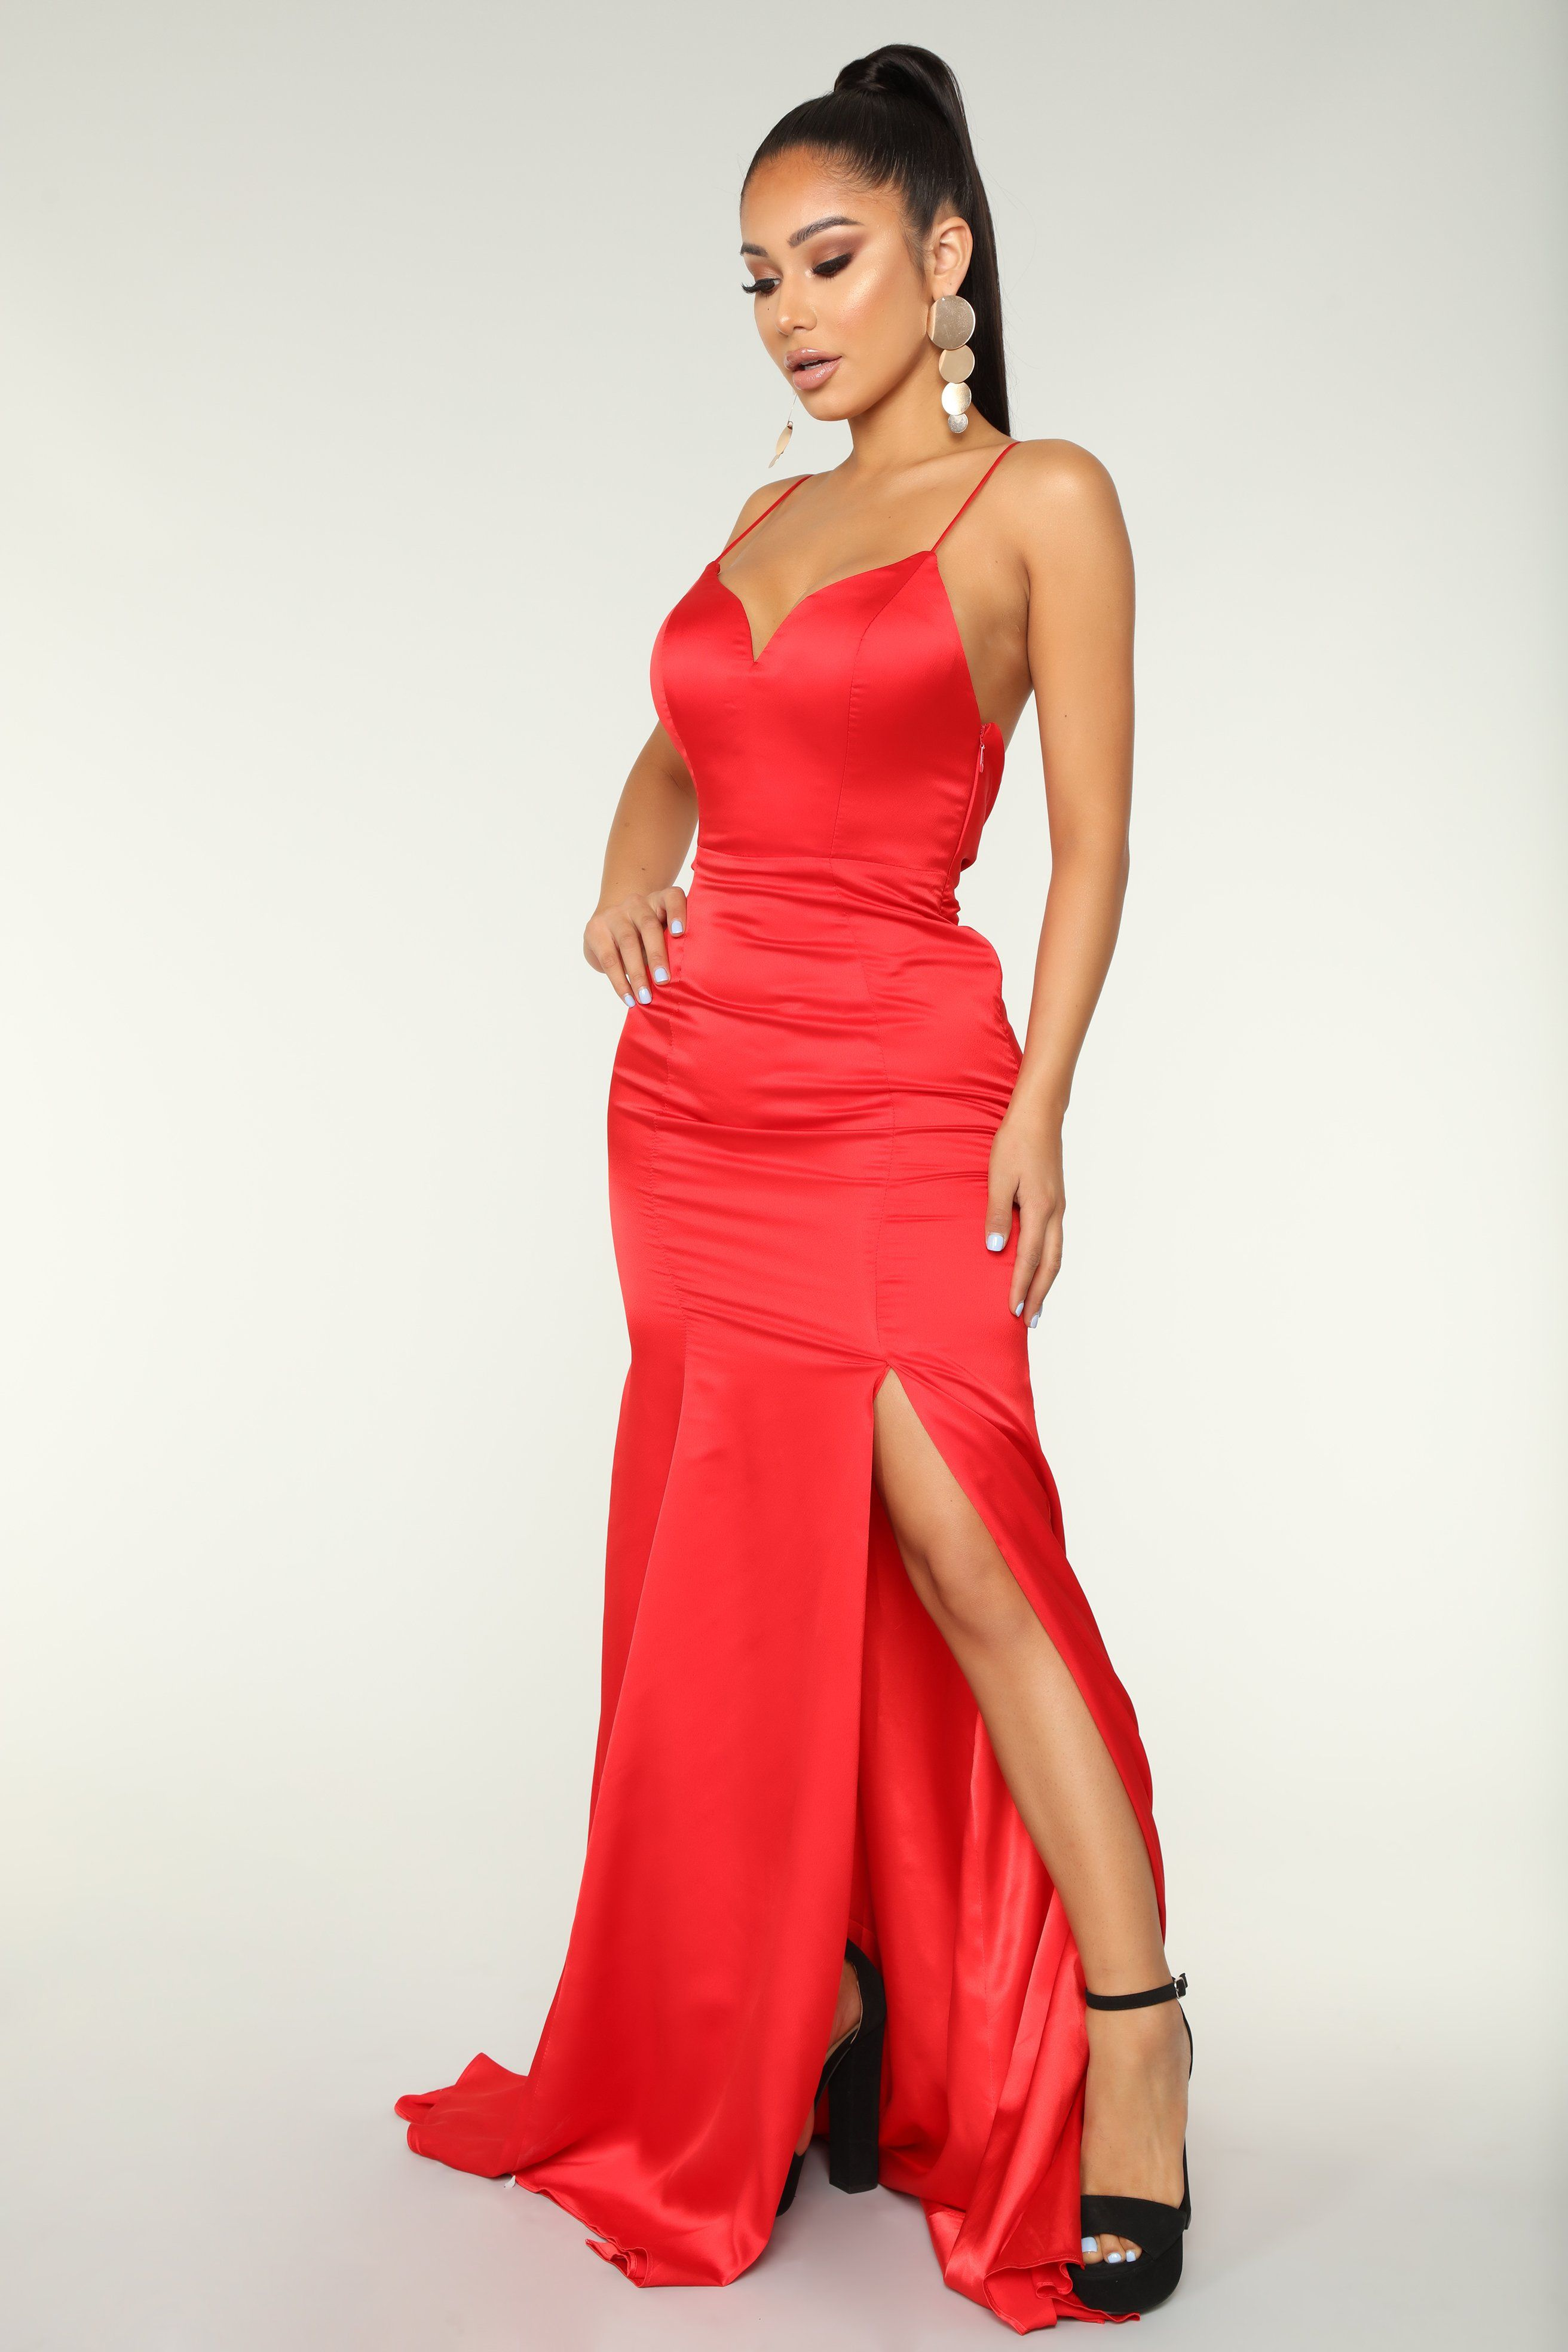 Light Of The Moon Satin Dress Red in 2020 Satin